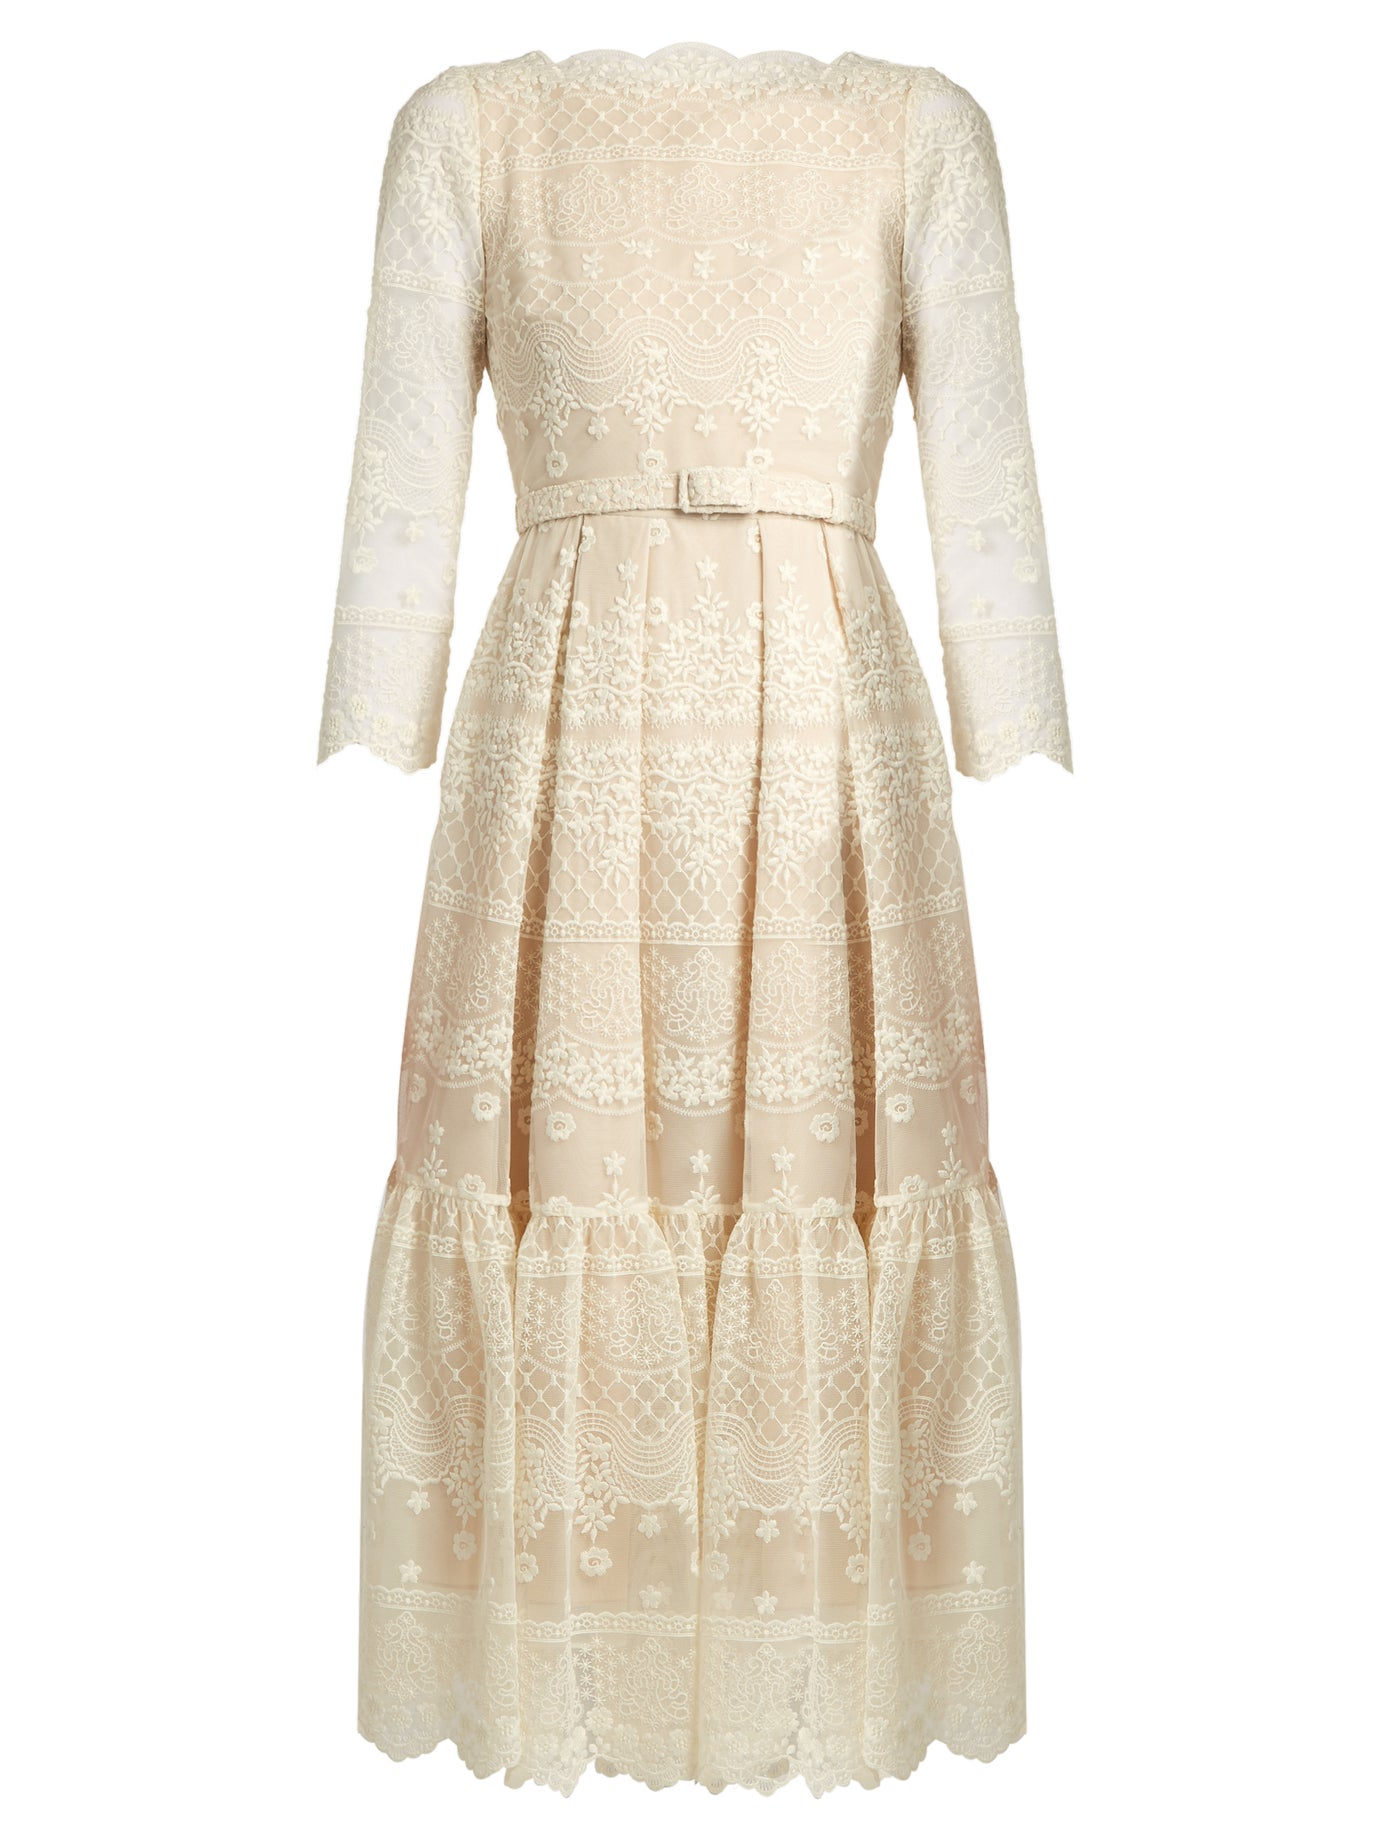 Erdem | Cherlyn floral-embroidered tulle dress | Clouty